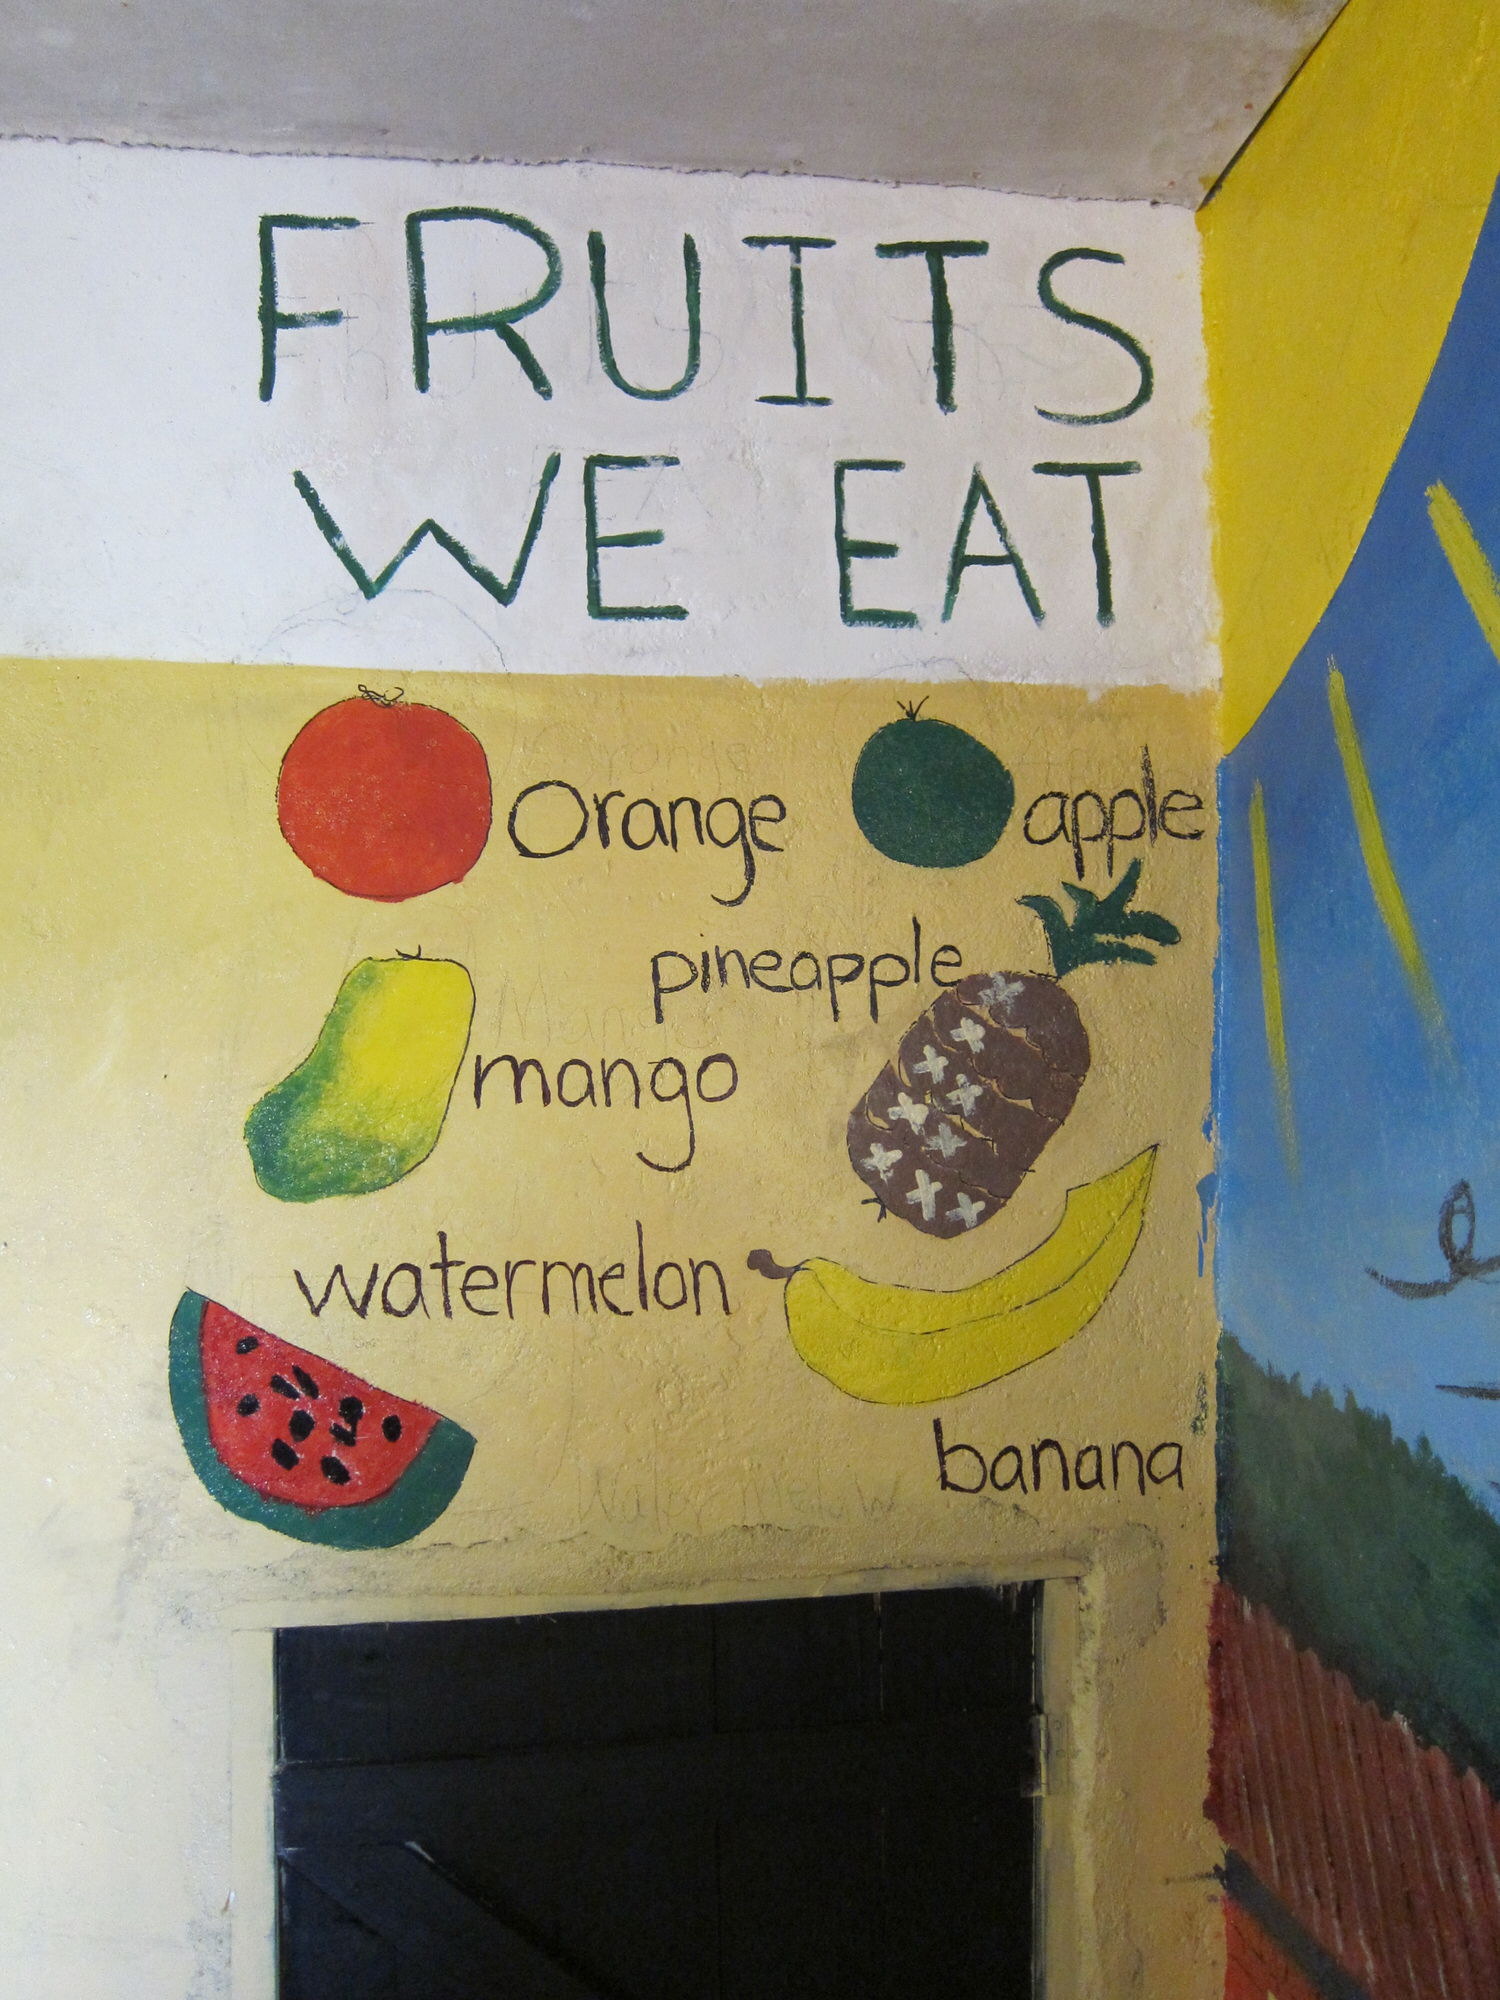 Fruits We Eat